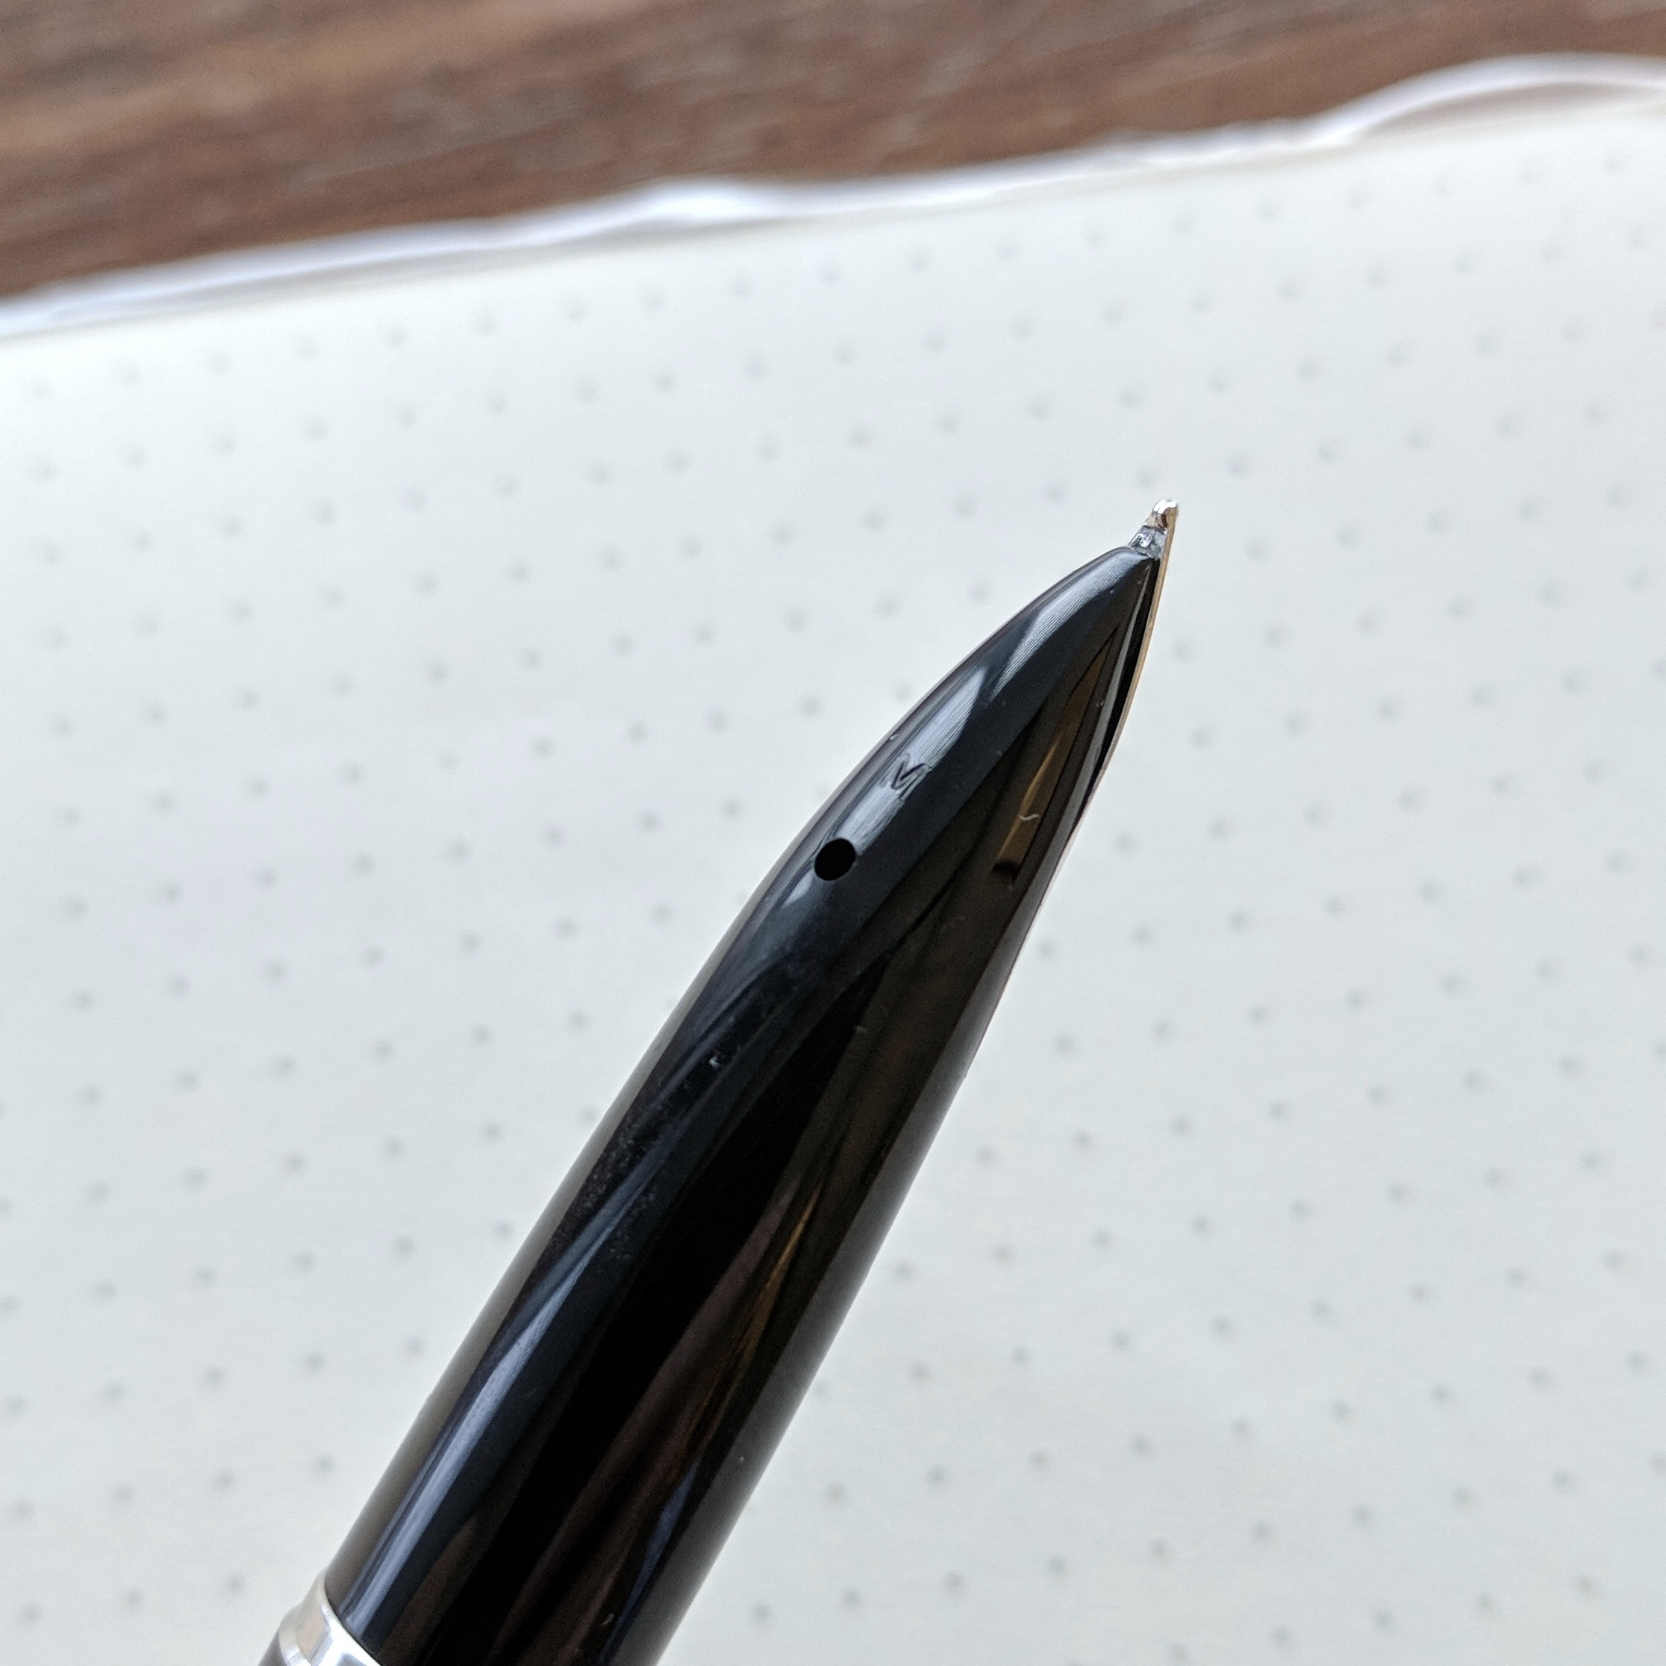 In order to get a full fill, make sure to fully submerge the breather hole on the bottom of the nib section. This can be challenging with certain ink bottles. (Ahem, Sailor.)